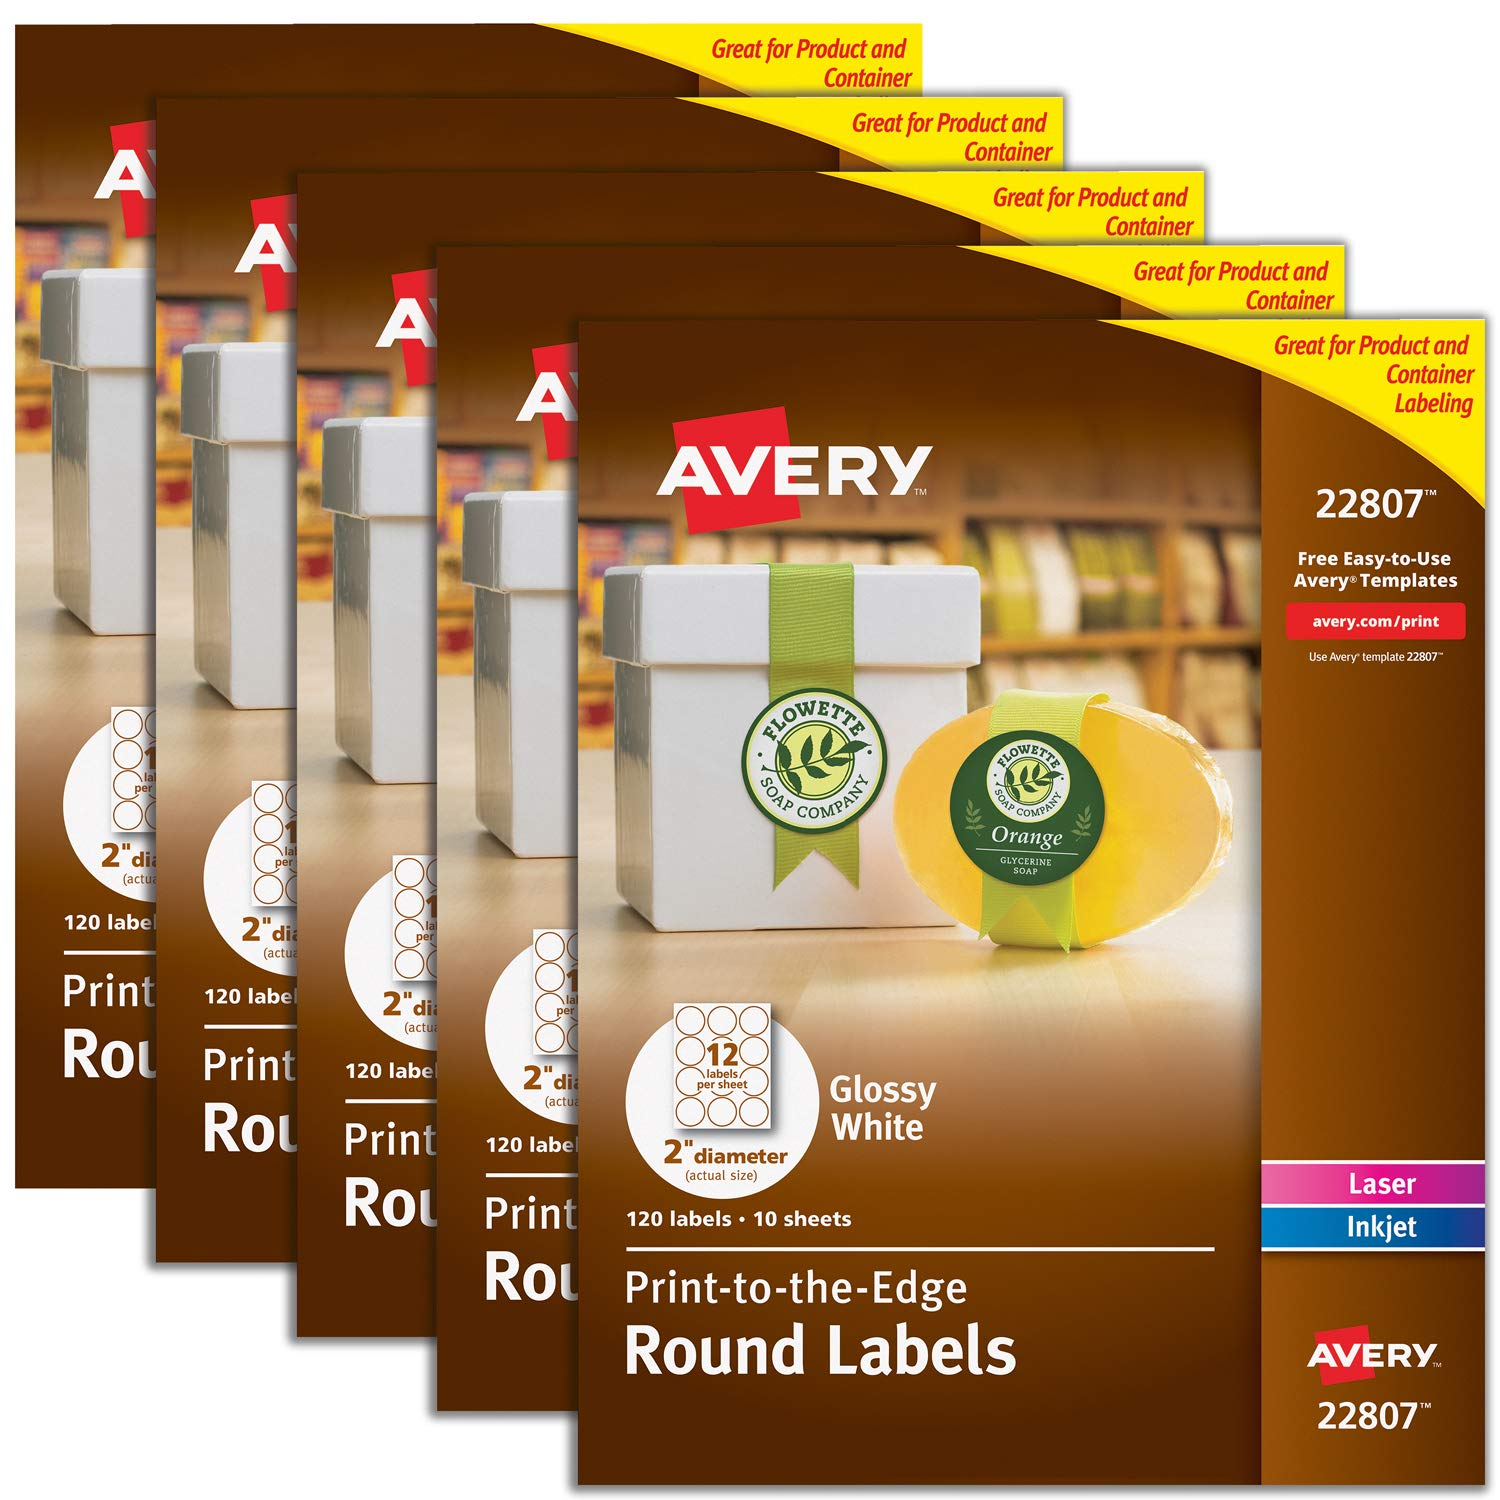 Avery 2'' Round Labels for Laser & Inkjet Printers, 600 Glossy White Labels Total, 5 Packs (22807) by AVERY